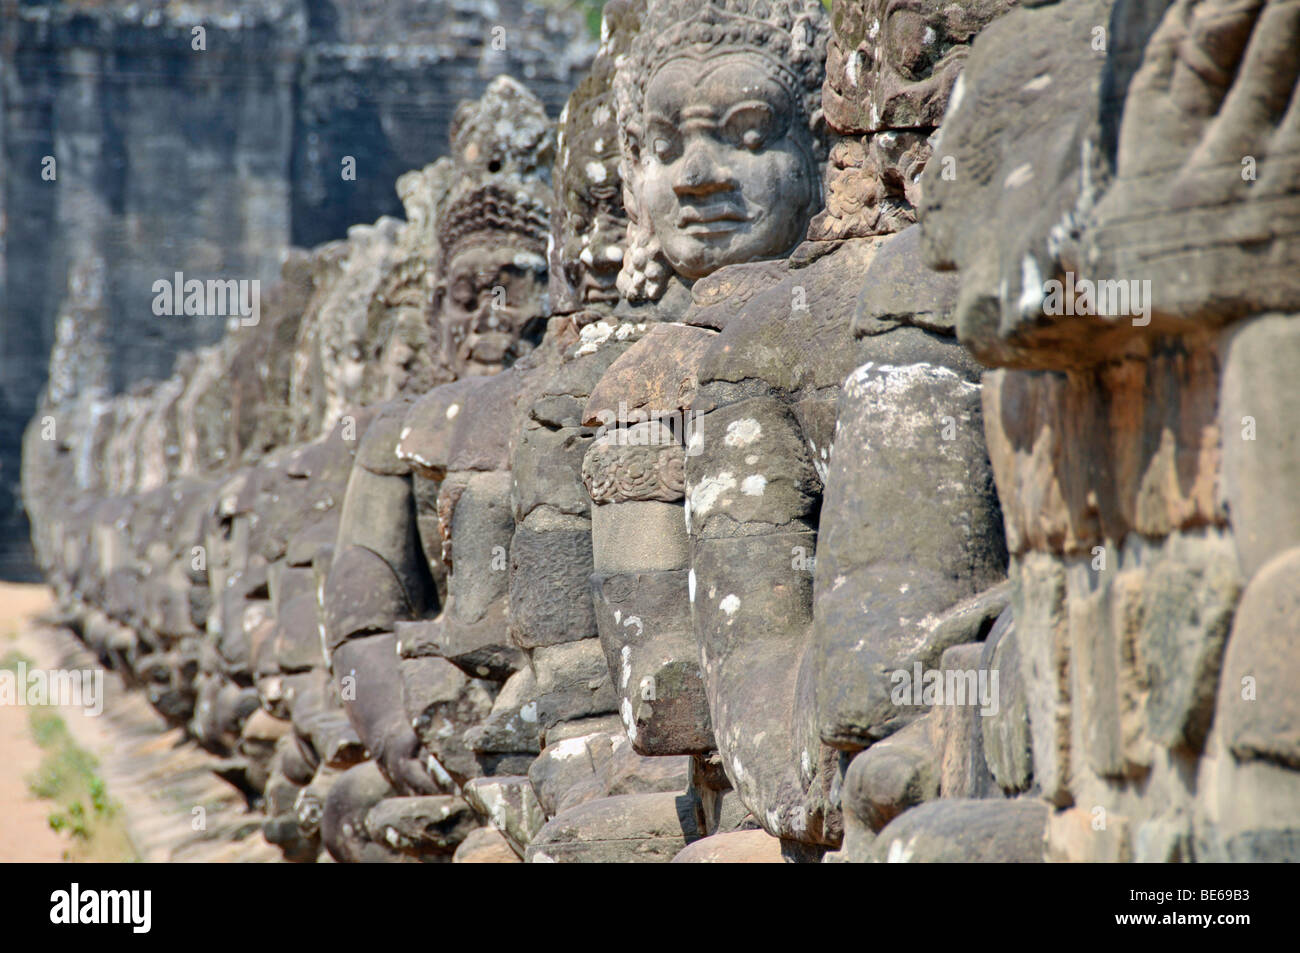 54 divine, fearsome stone creatures flanking the access to the entrance gates of Angkor Thom, Angkor Wat, Siem Reap, - Stock Image